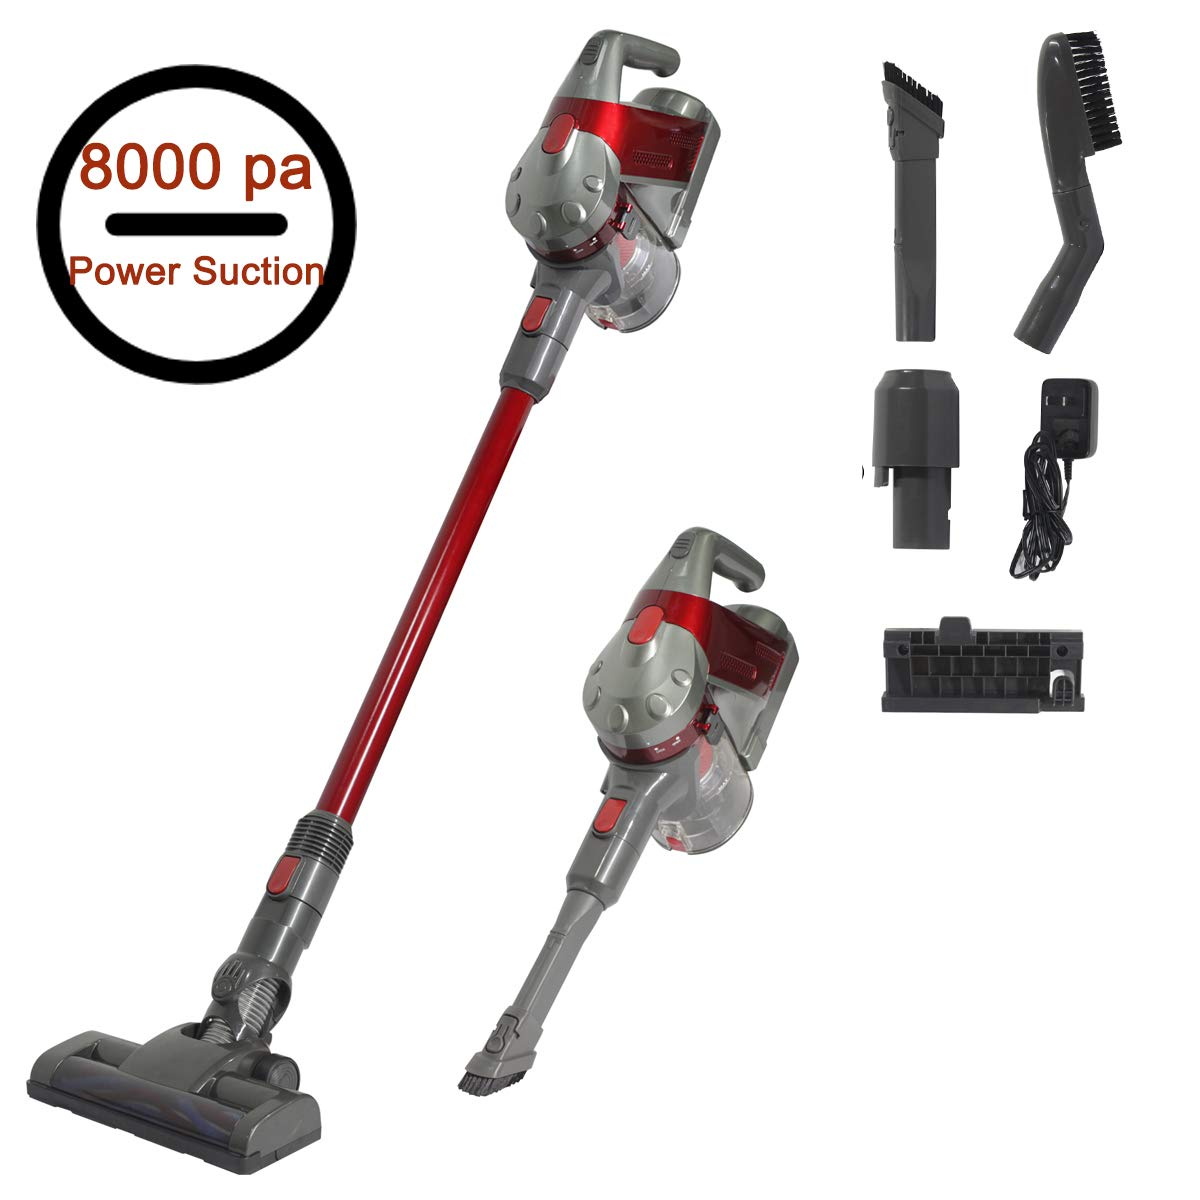 SU-VAC Cordless Vacuum Cleaner, 8000 pa Powerful Suction 2 in 1 Versatile Cyclone Stick & Handheld Lightweight Vacuum Cleaner with Detachable Rechargeable Lithium-Ion Battery and Wall Mount(Red)